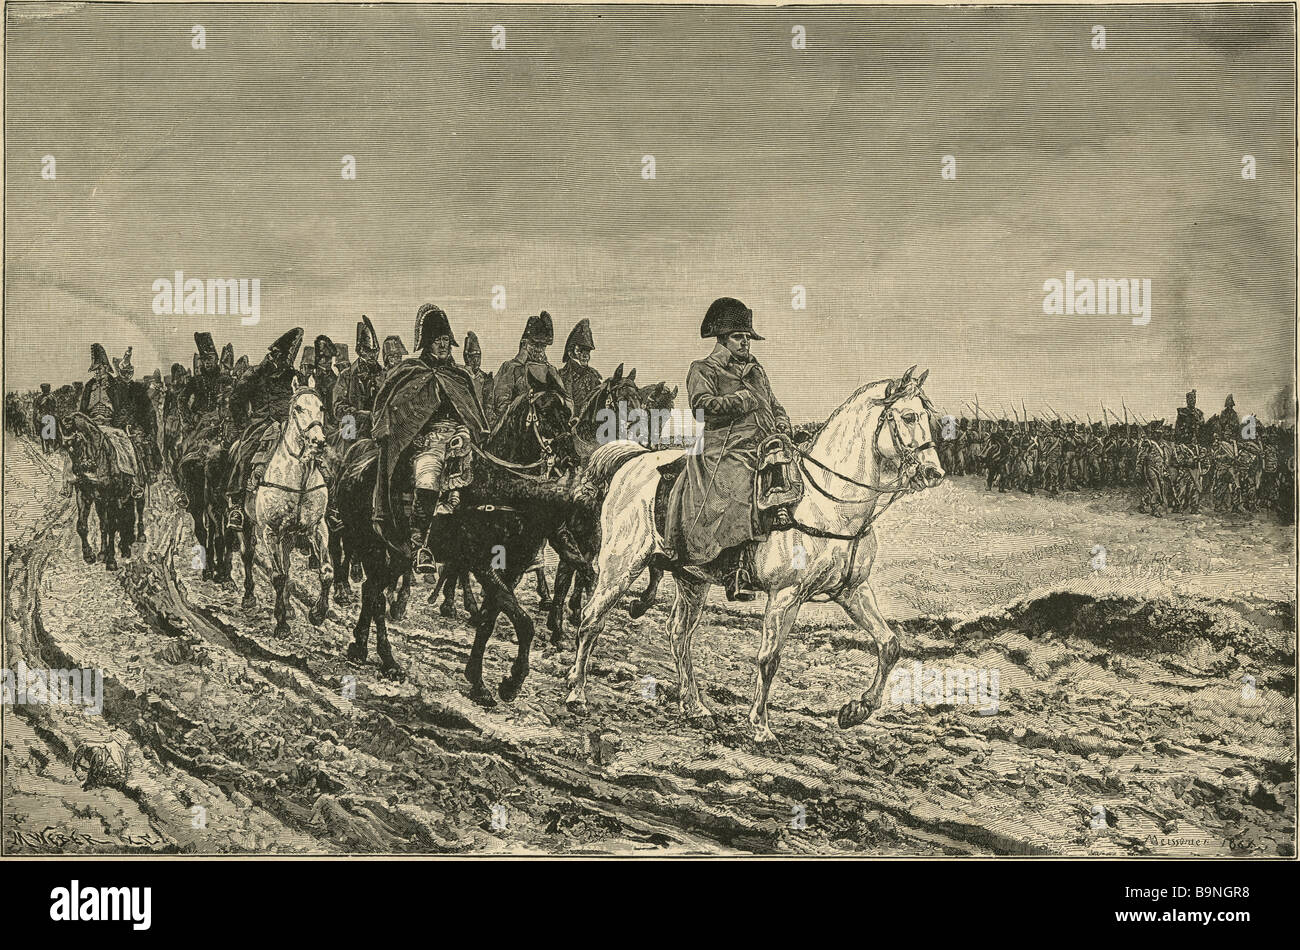 Napoleon's Retreat of the Grand Army from Russia, painted by Meissonier in 1861. Engraving by M Weber. - Stock Image